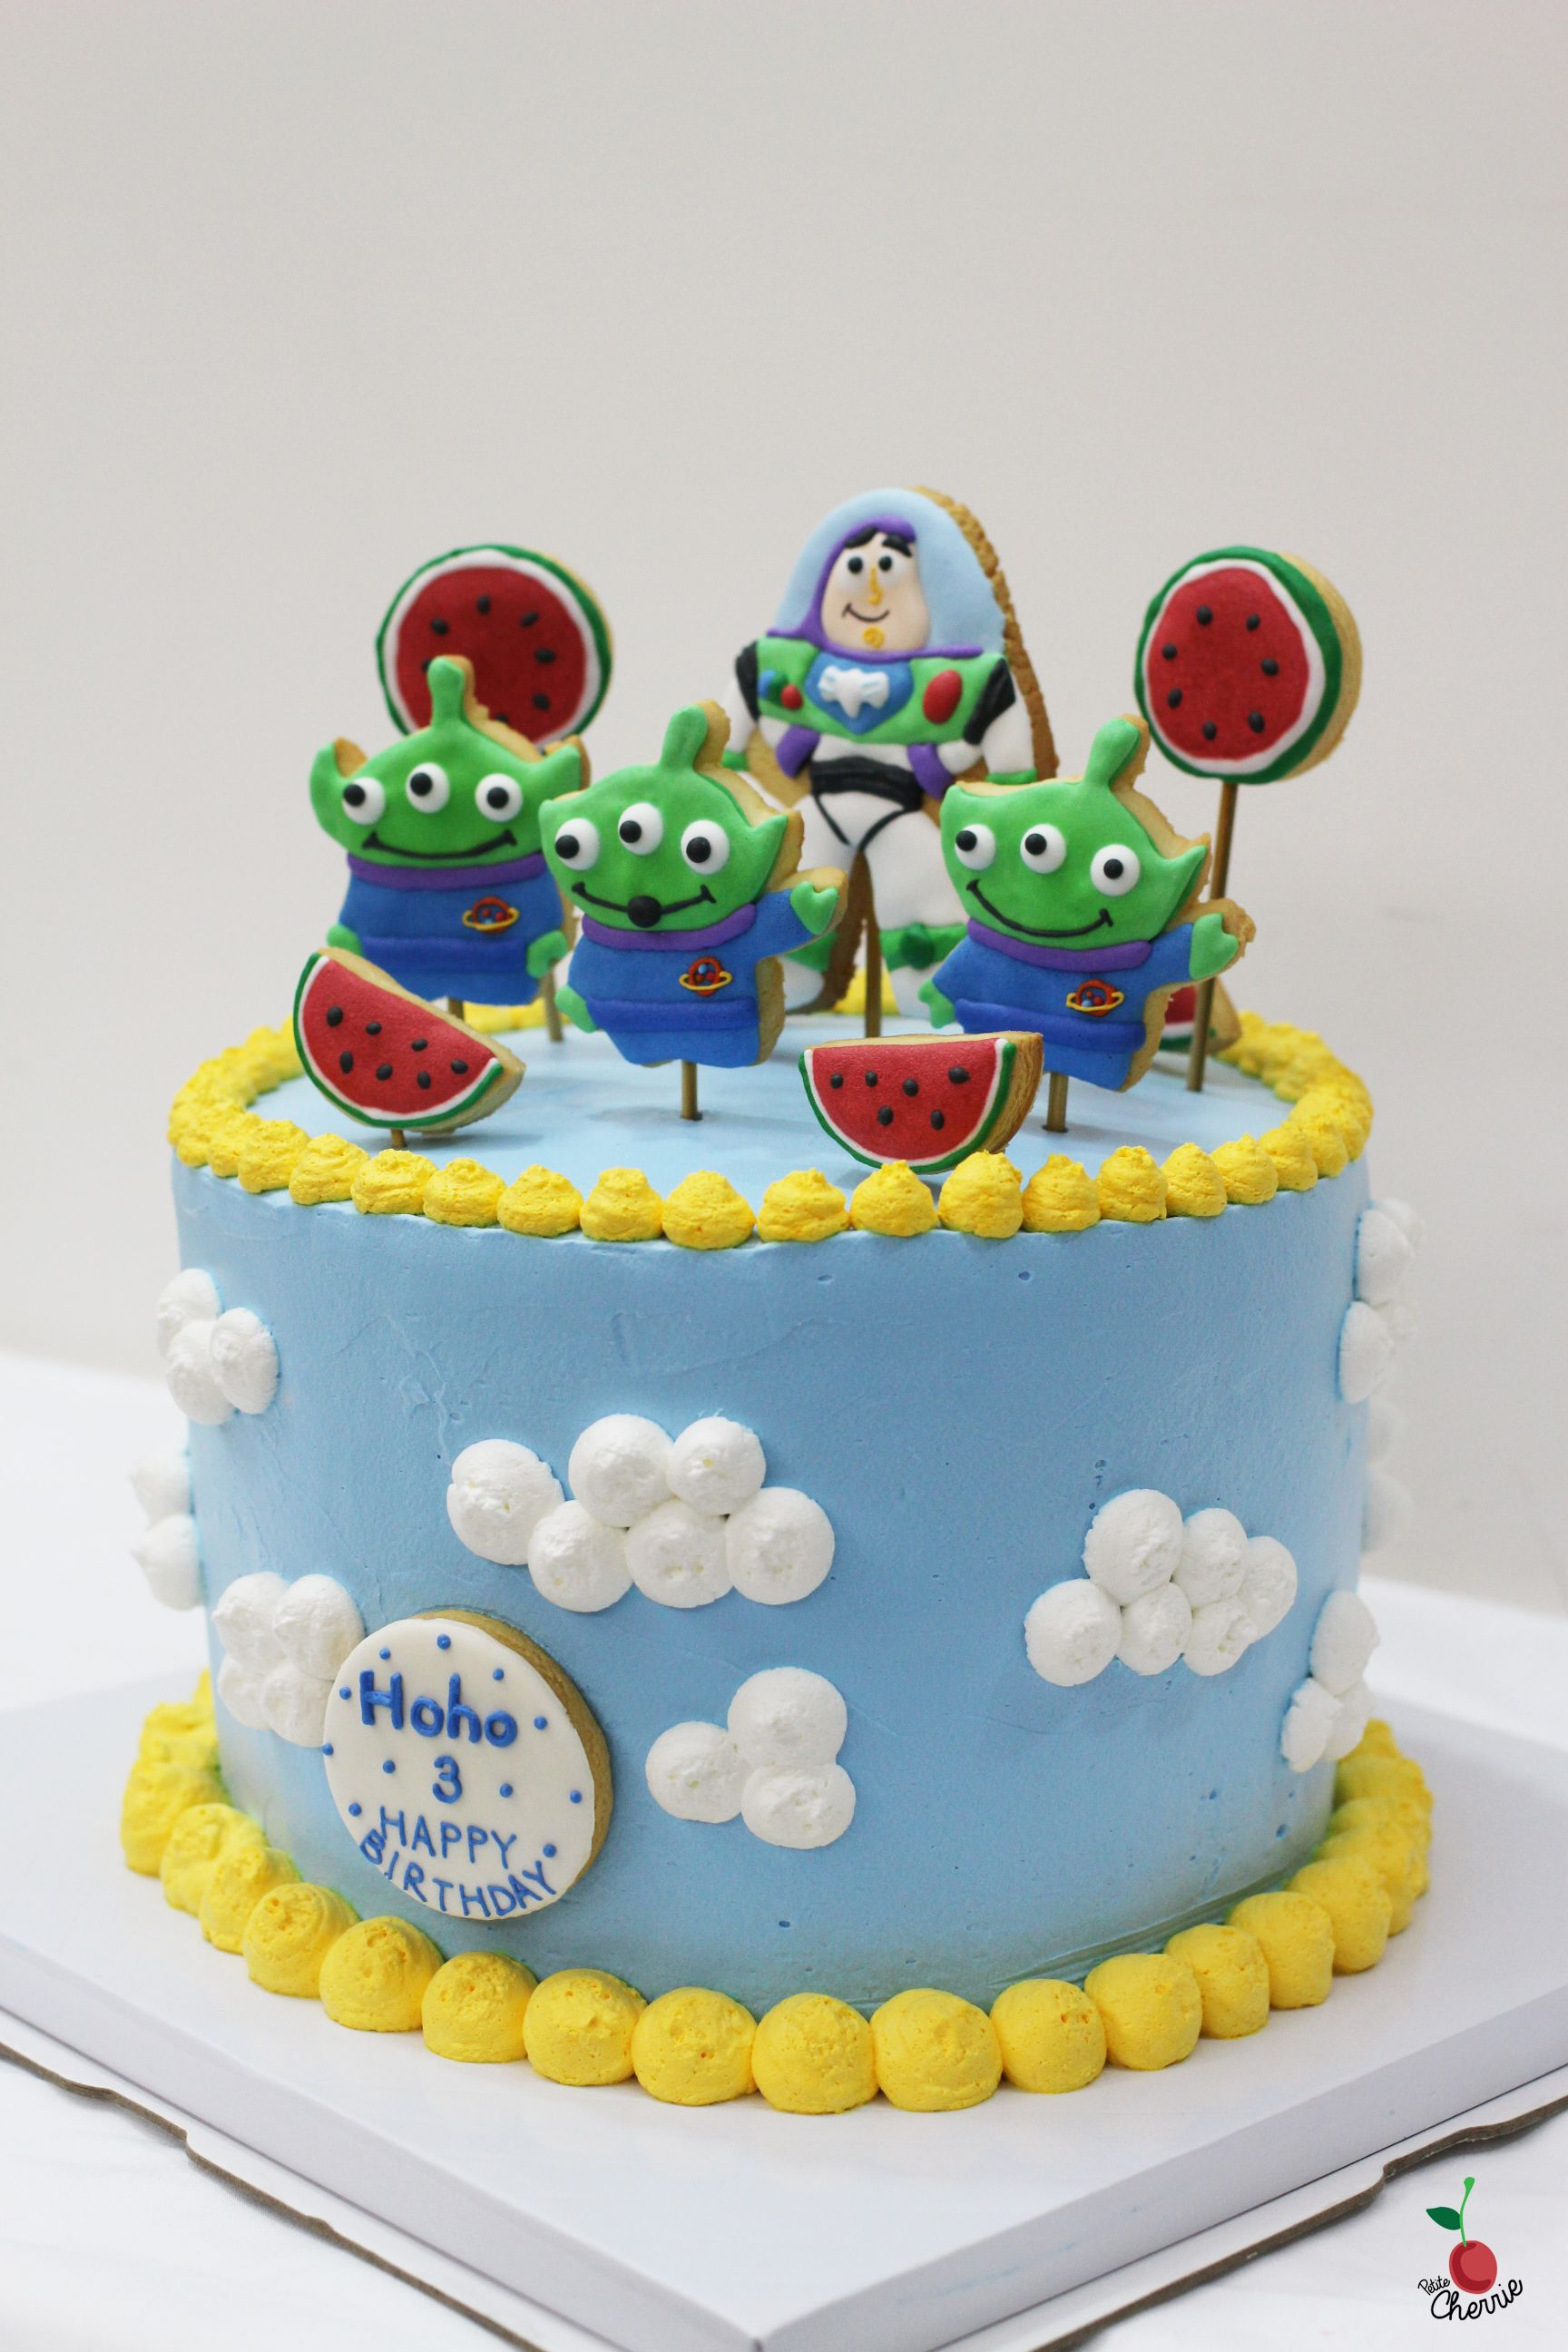 Toy Story Little Green Men Birthday Cake Angel Food Cake With Fresh